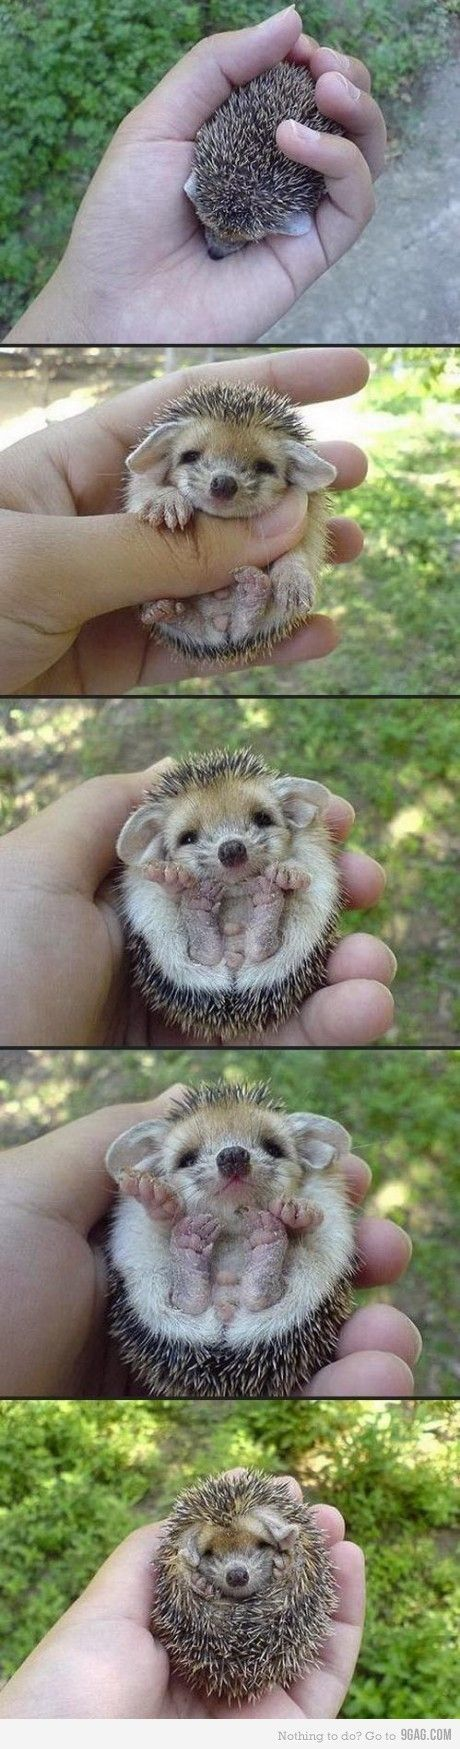 Cute little hedgehog